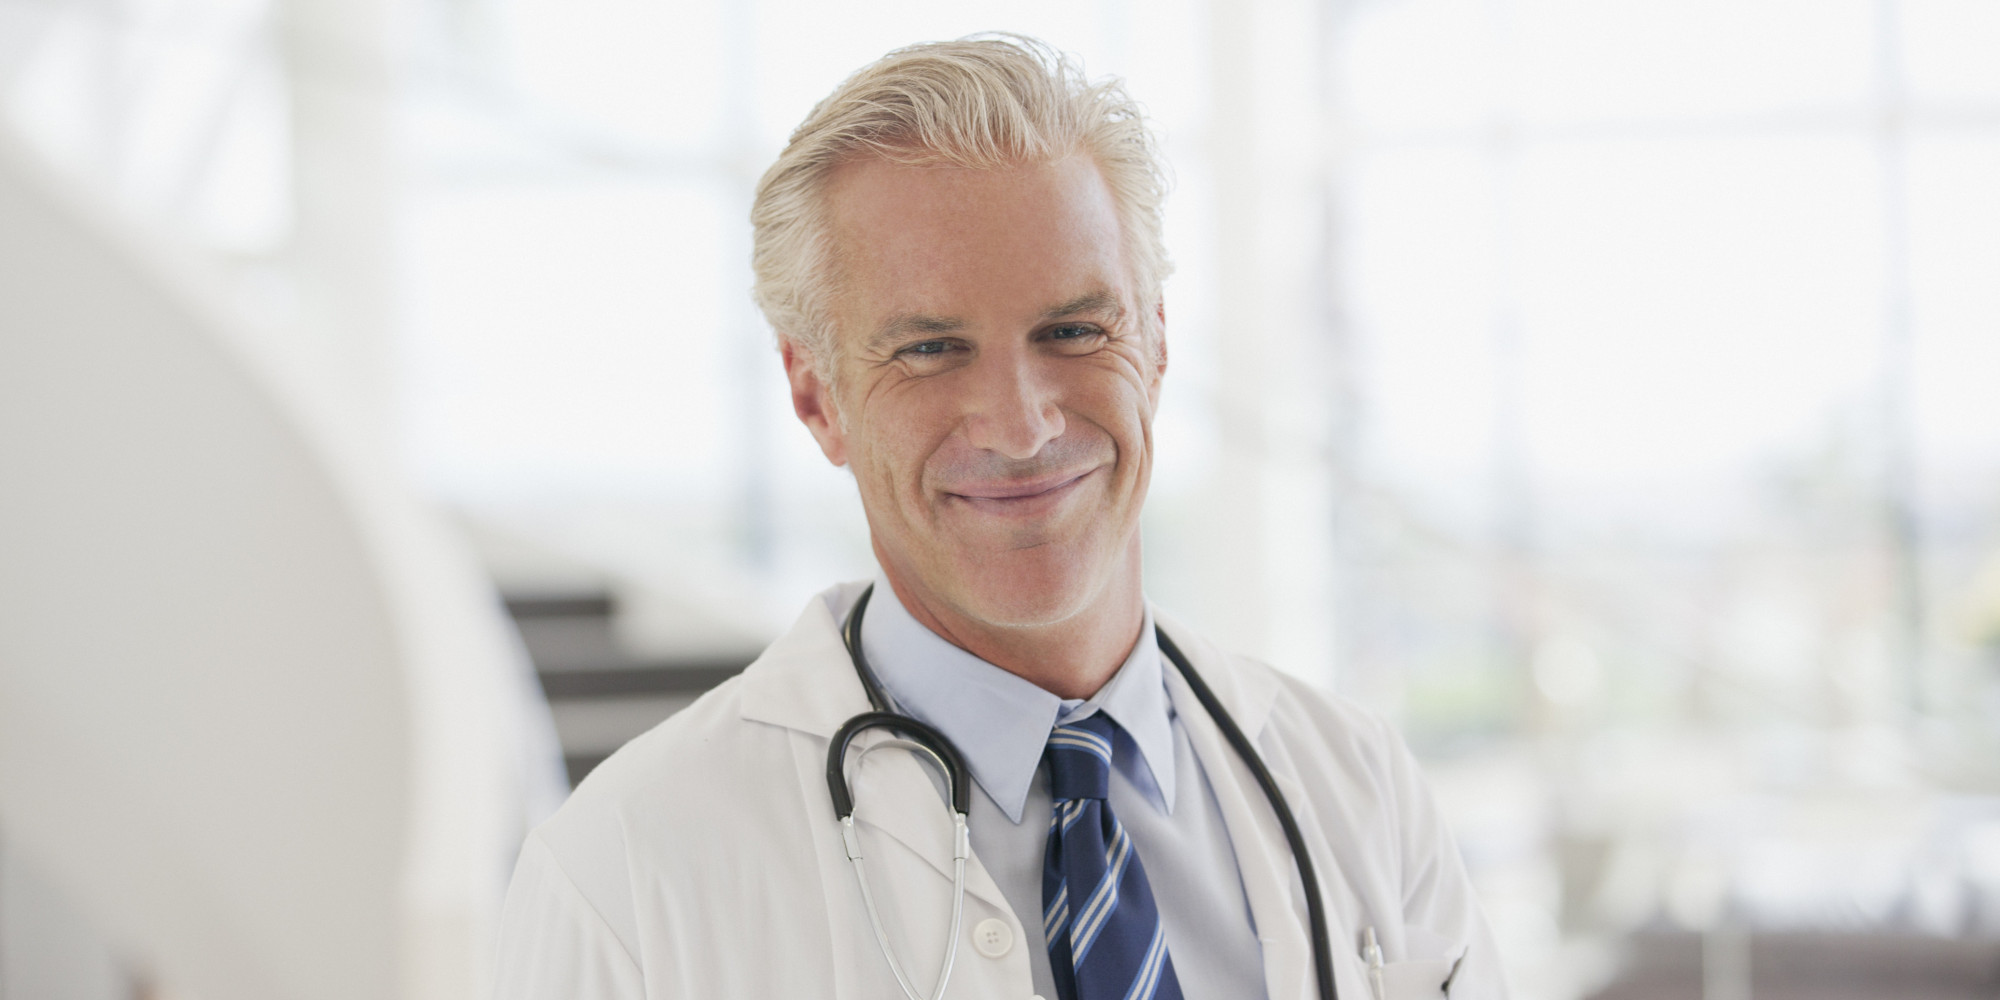 how to tell if you are disliked by a doctor